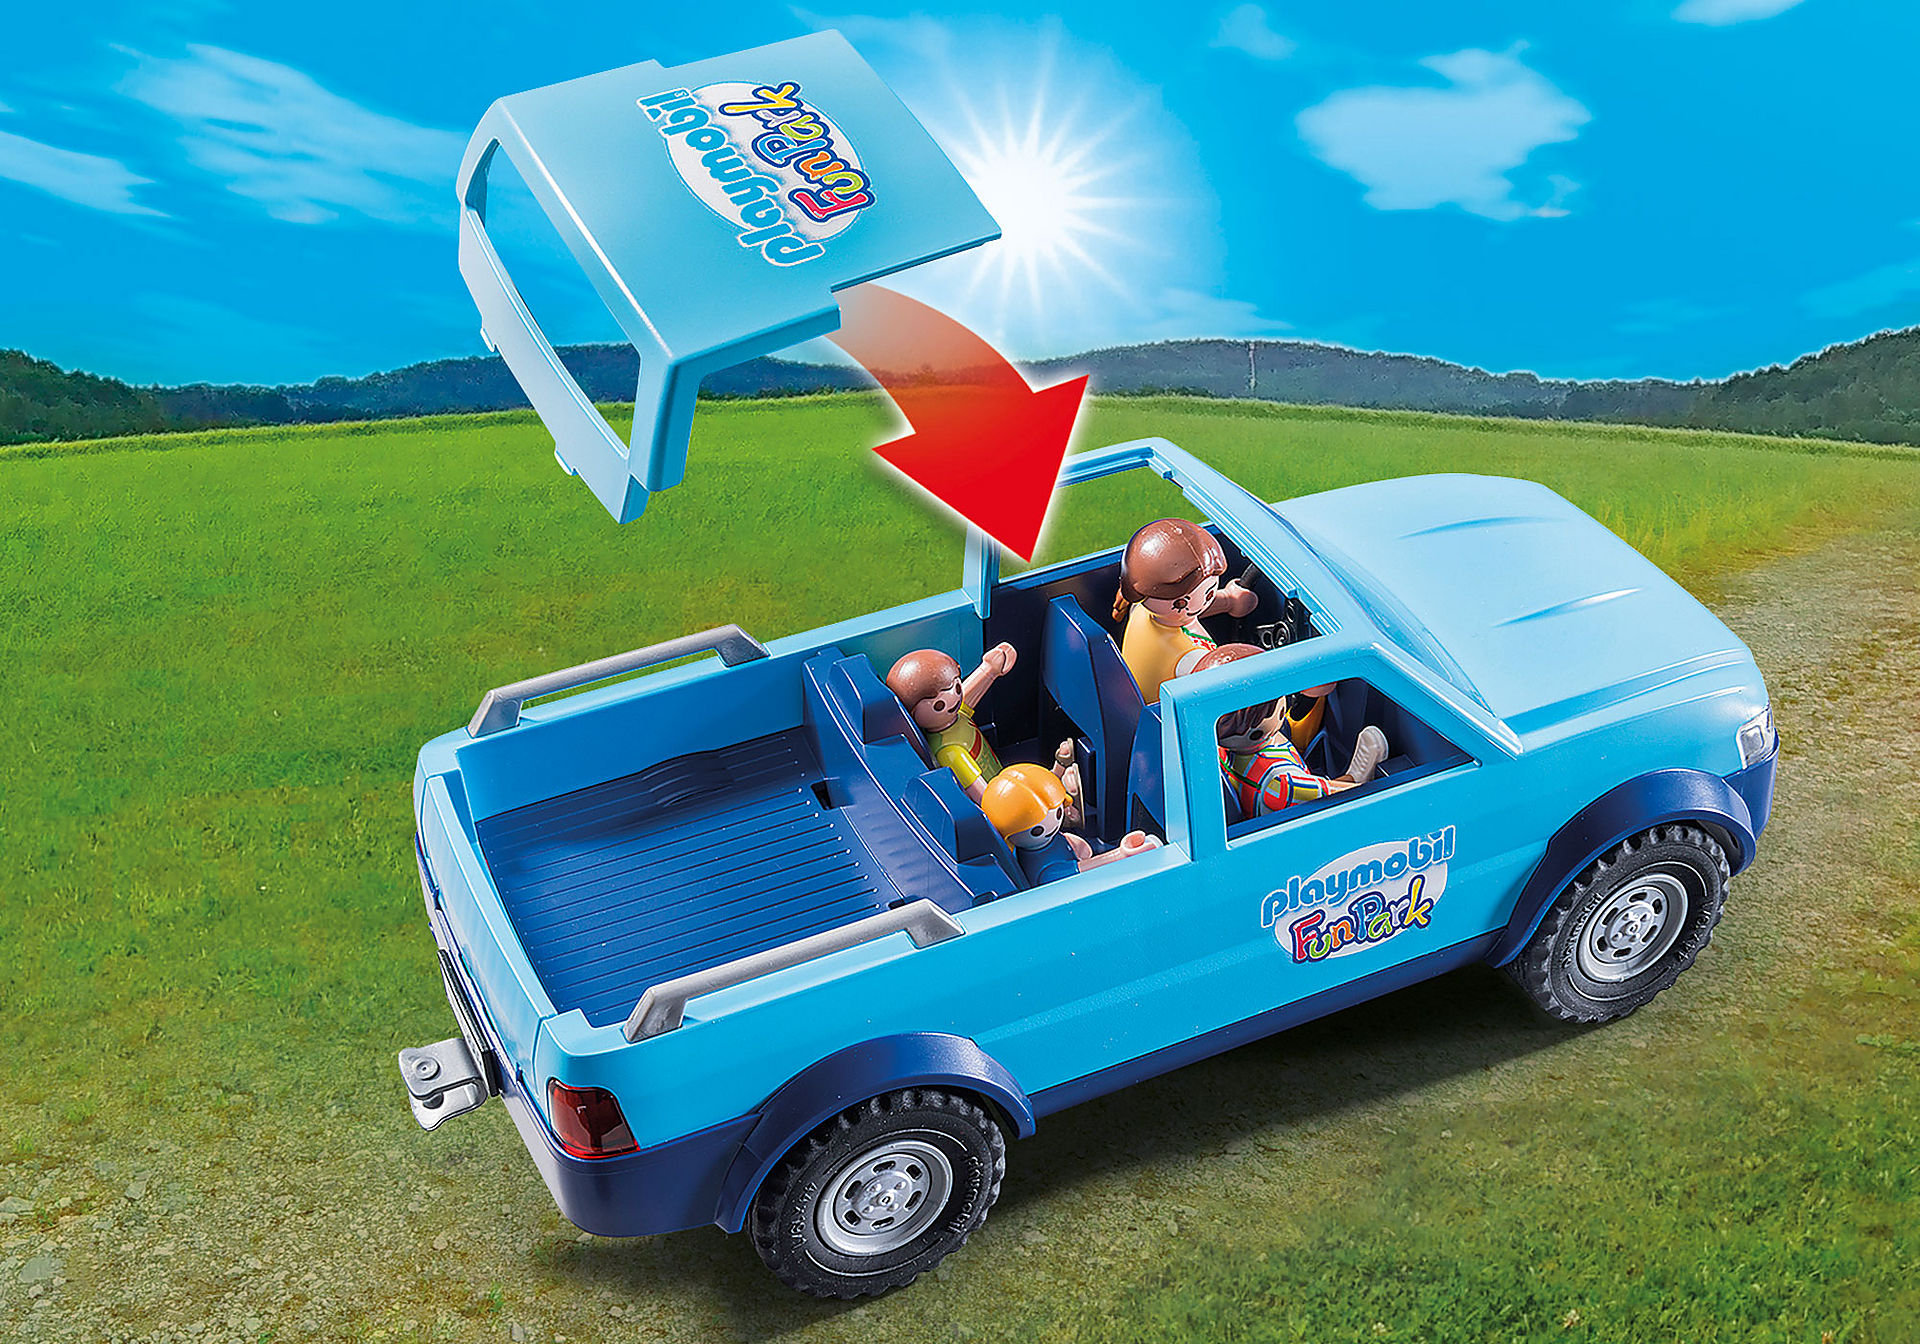 http://media.playmobil.com/i/playmobil/9502_product_extra1/Playmobil-Pick-Up mit Wohnwagen